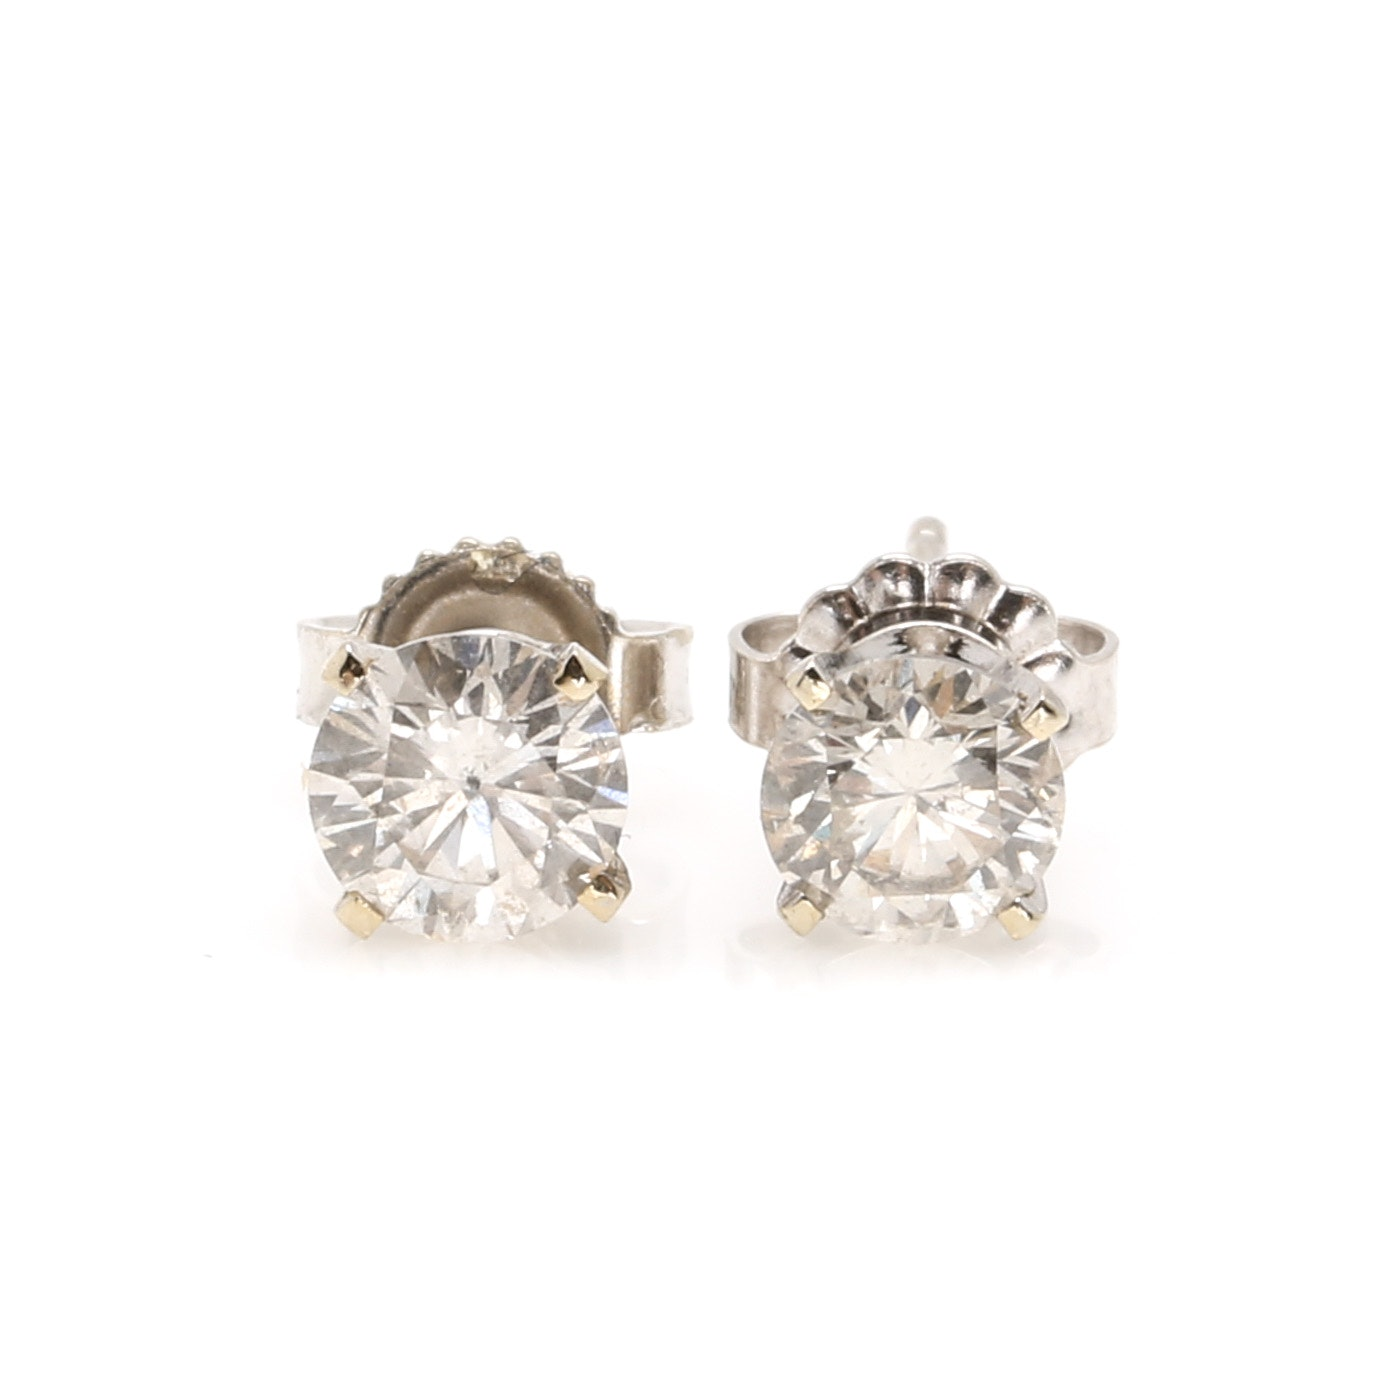 14K White Gold 1.02 CTW Diamond Stud Earrings